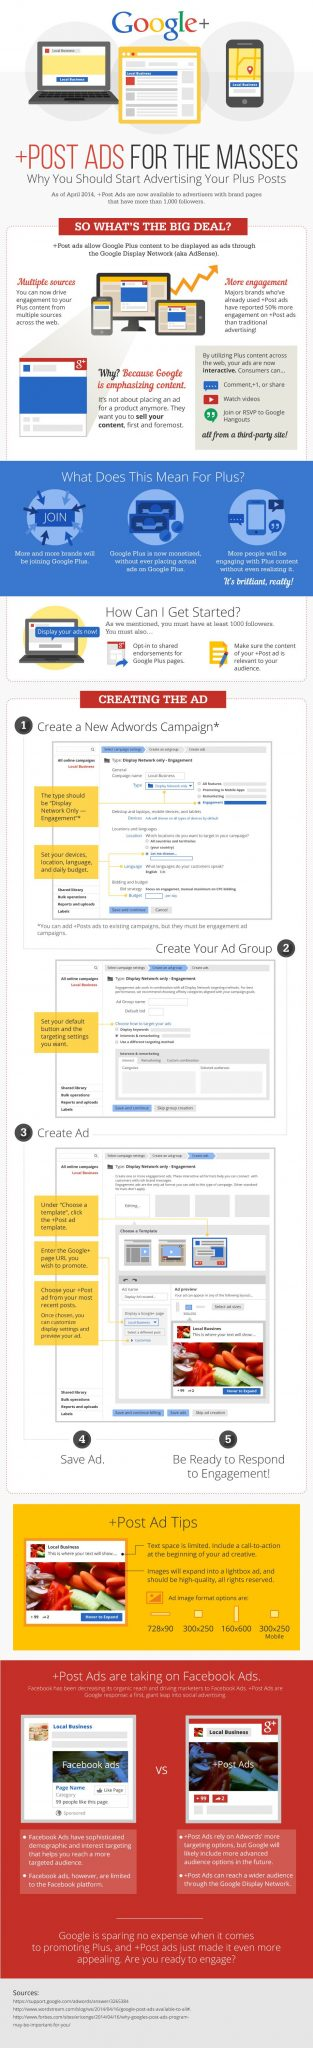 Are Google Plus Post Ads Over The Top? [INFOGRAPHIC]